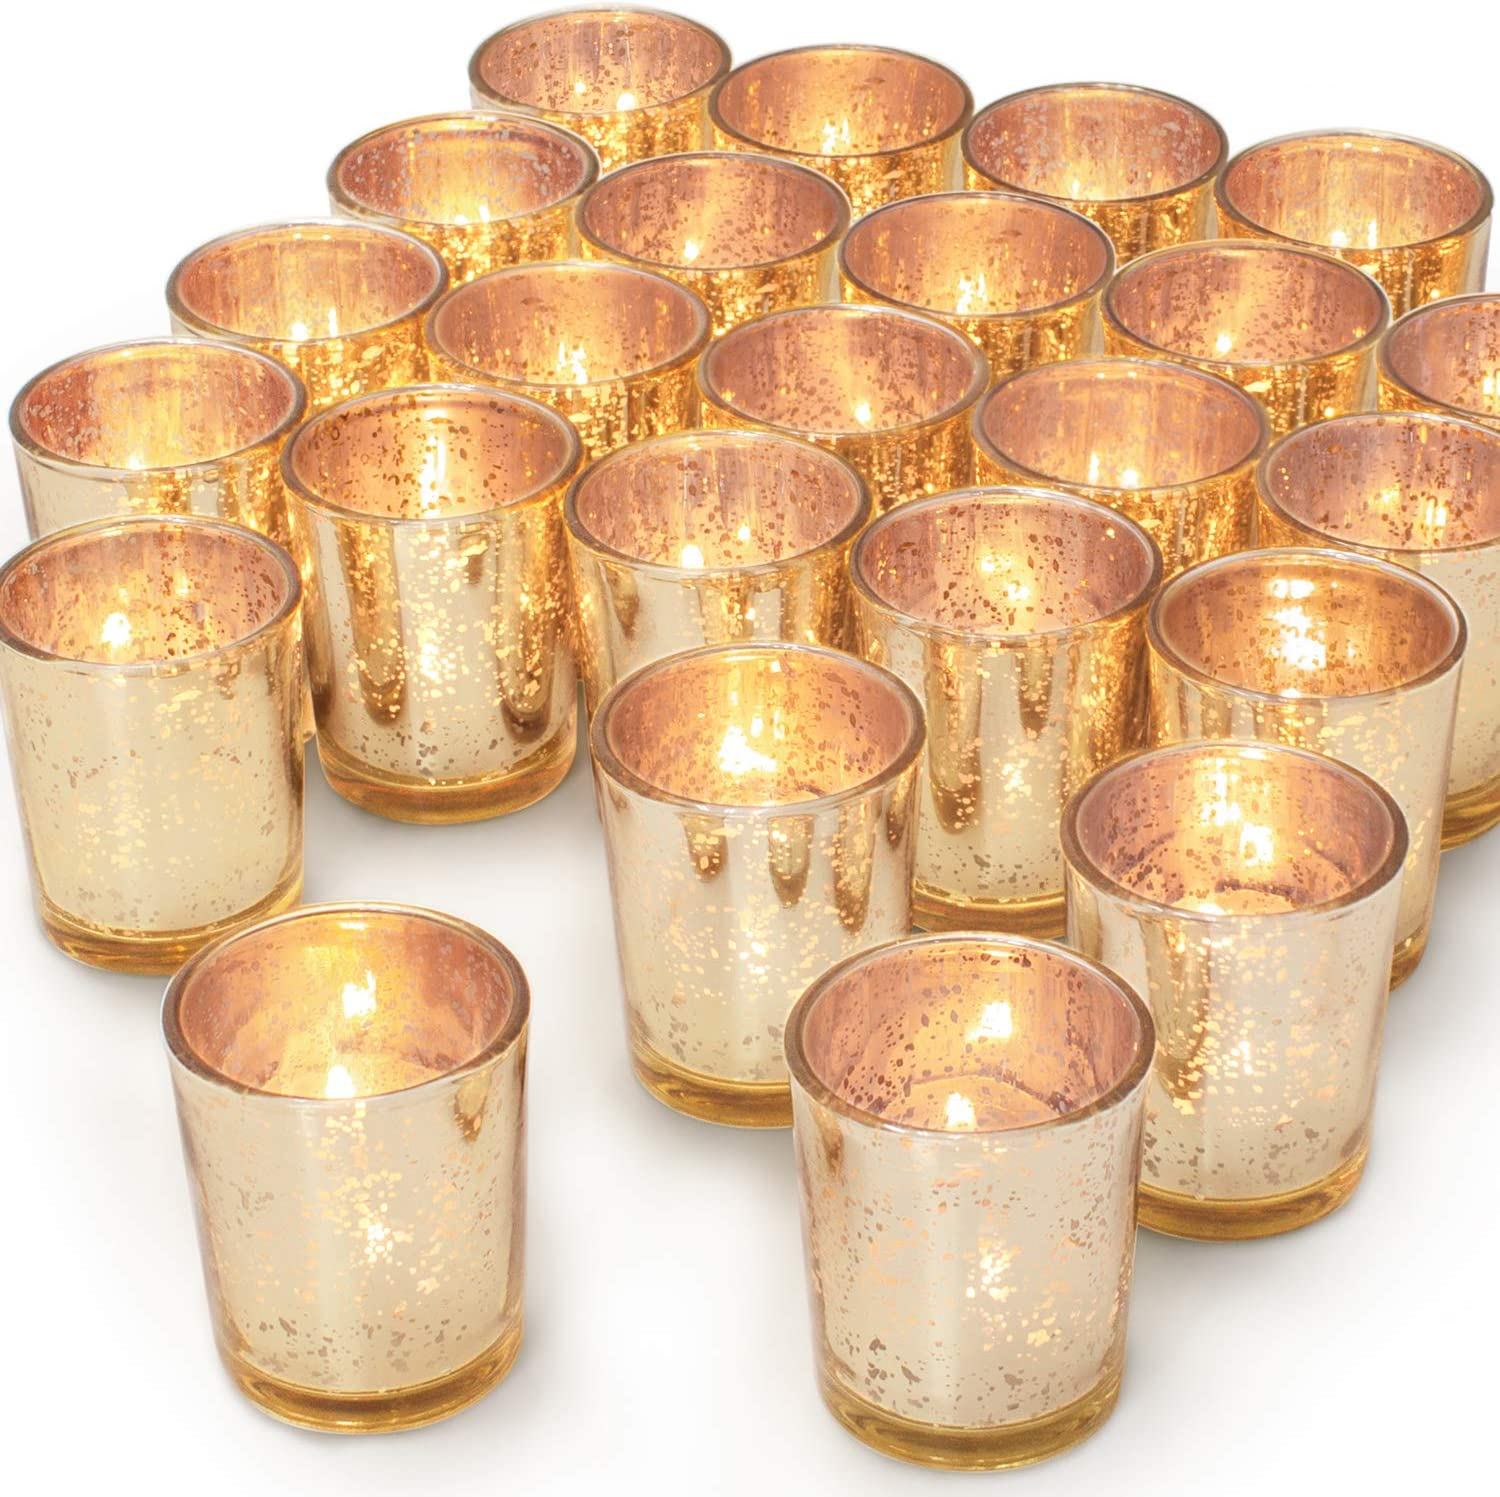 CustomTealigh Holders 24+Votive Candle Holder Wedding Favors Two Are Better Than One Wedding Decor PWRSW48ZA Glass Candle Holder